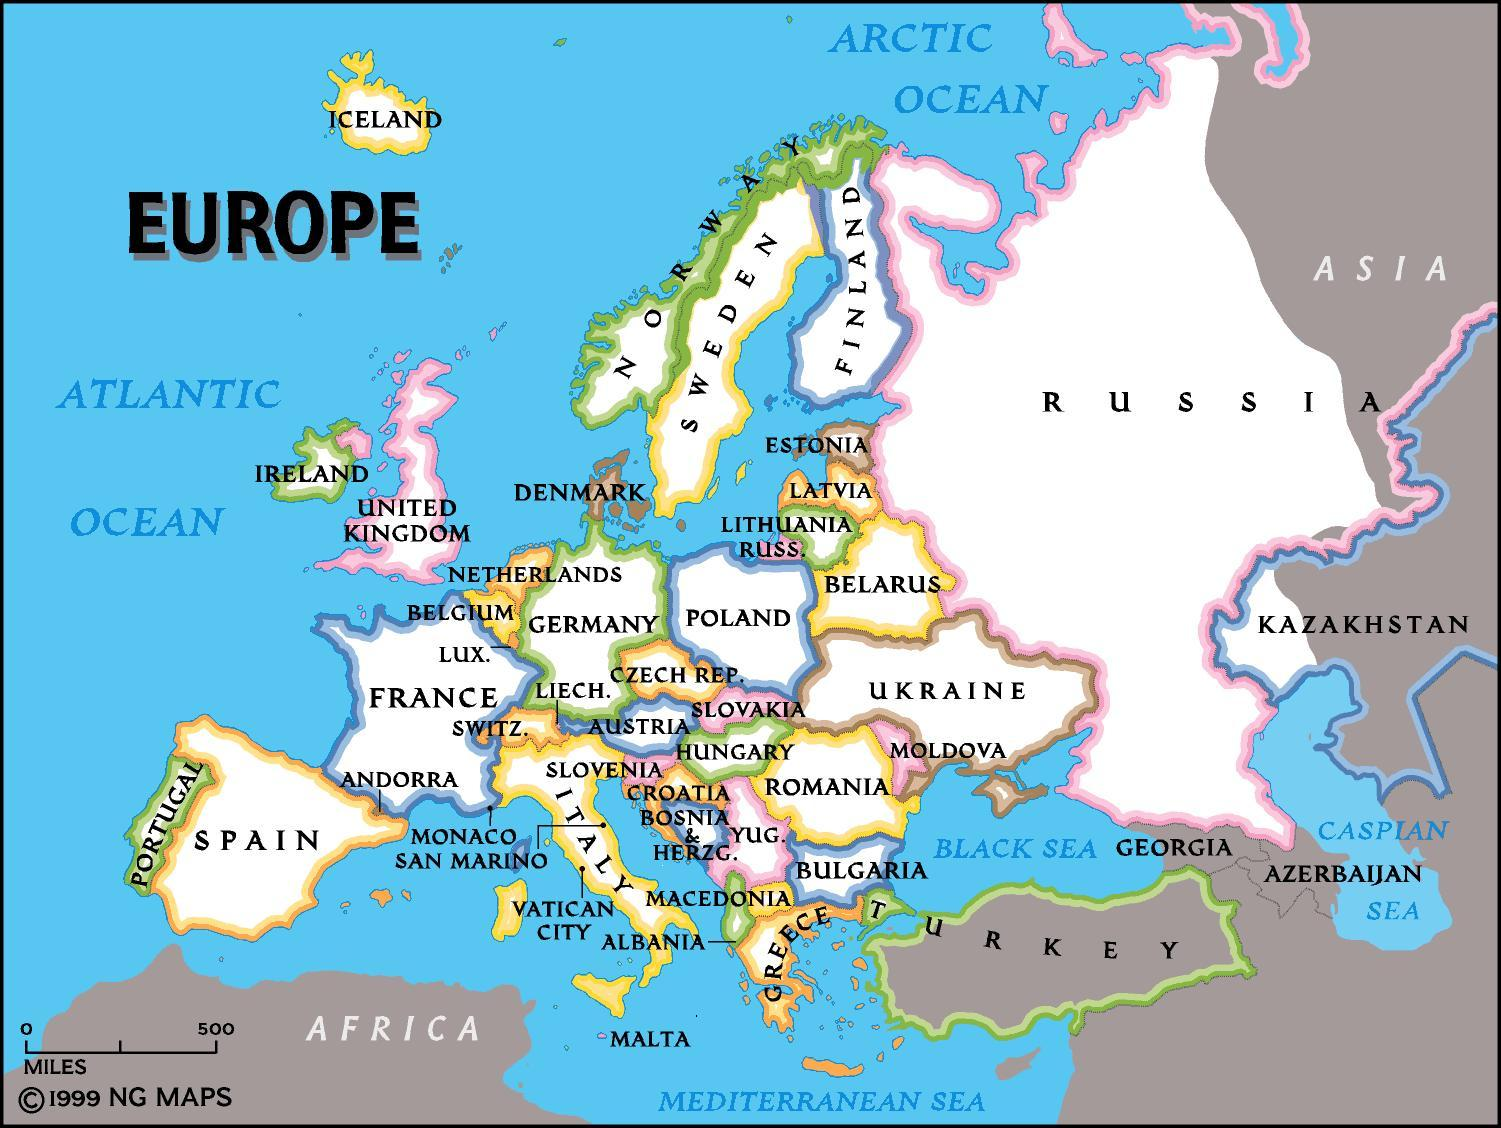 20th century europe 20th century europe ile arthur drea ekitabı satın al in terms of major events, the 20th century influences nations, regions, and peoples in profound and all-inclusive ways.